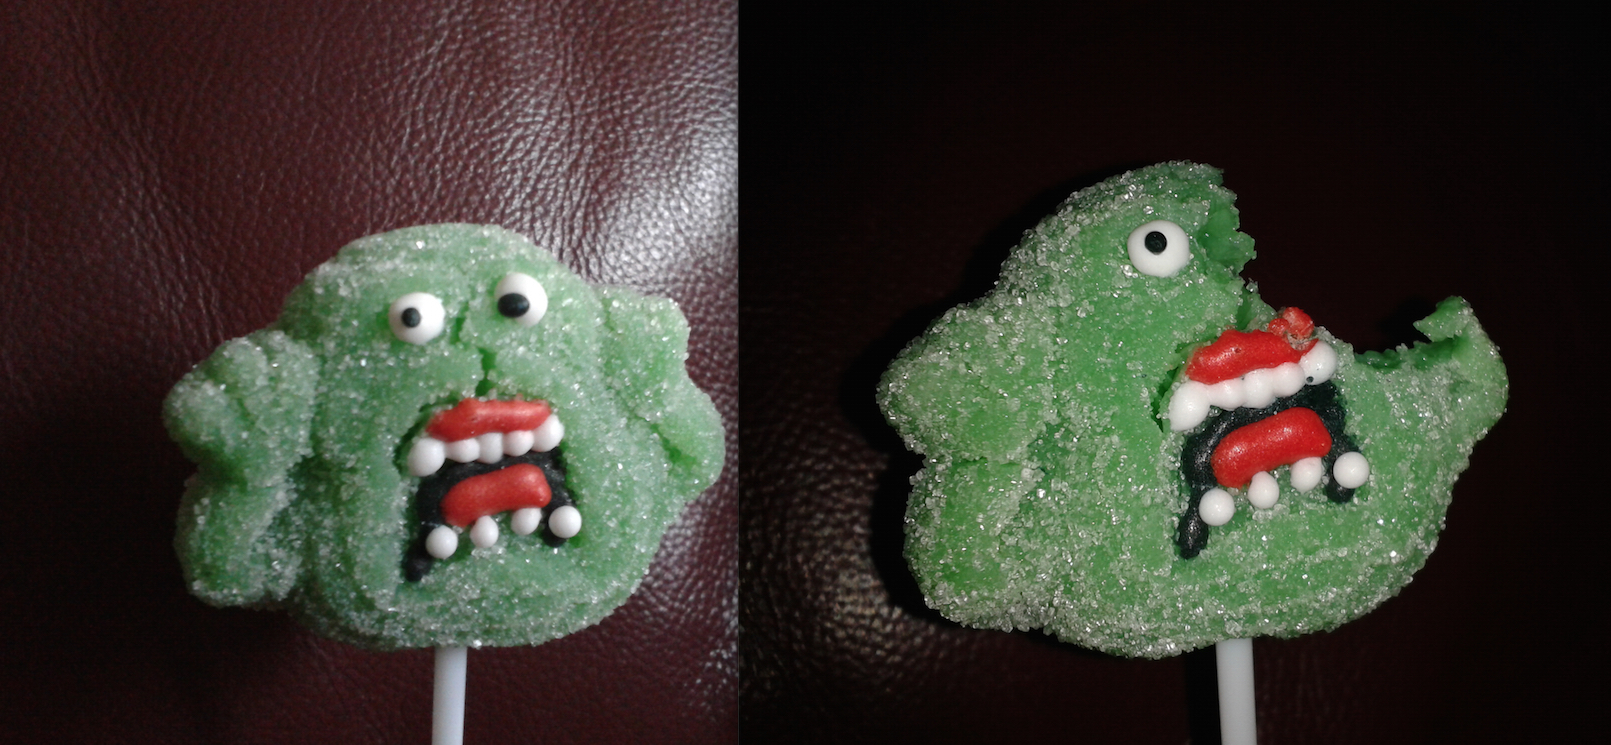 Ghostbusters Jelly Pop Slimer - Before And After A Bite!